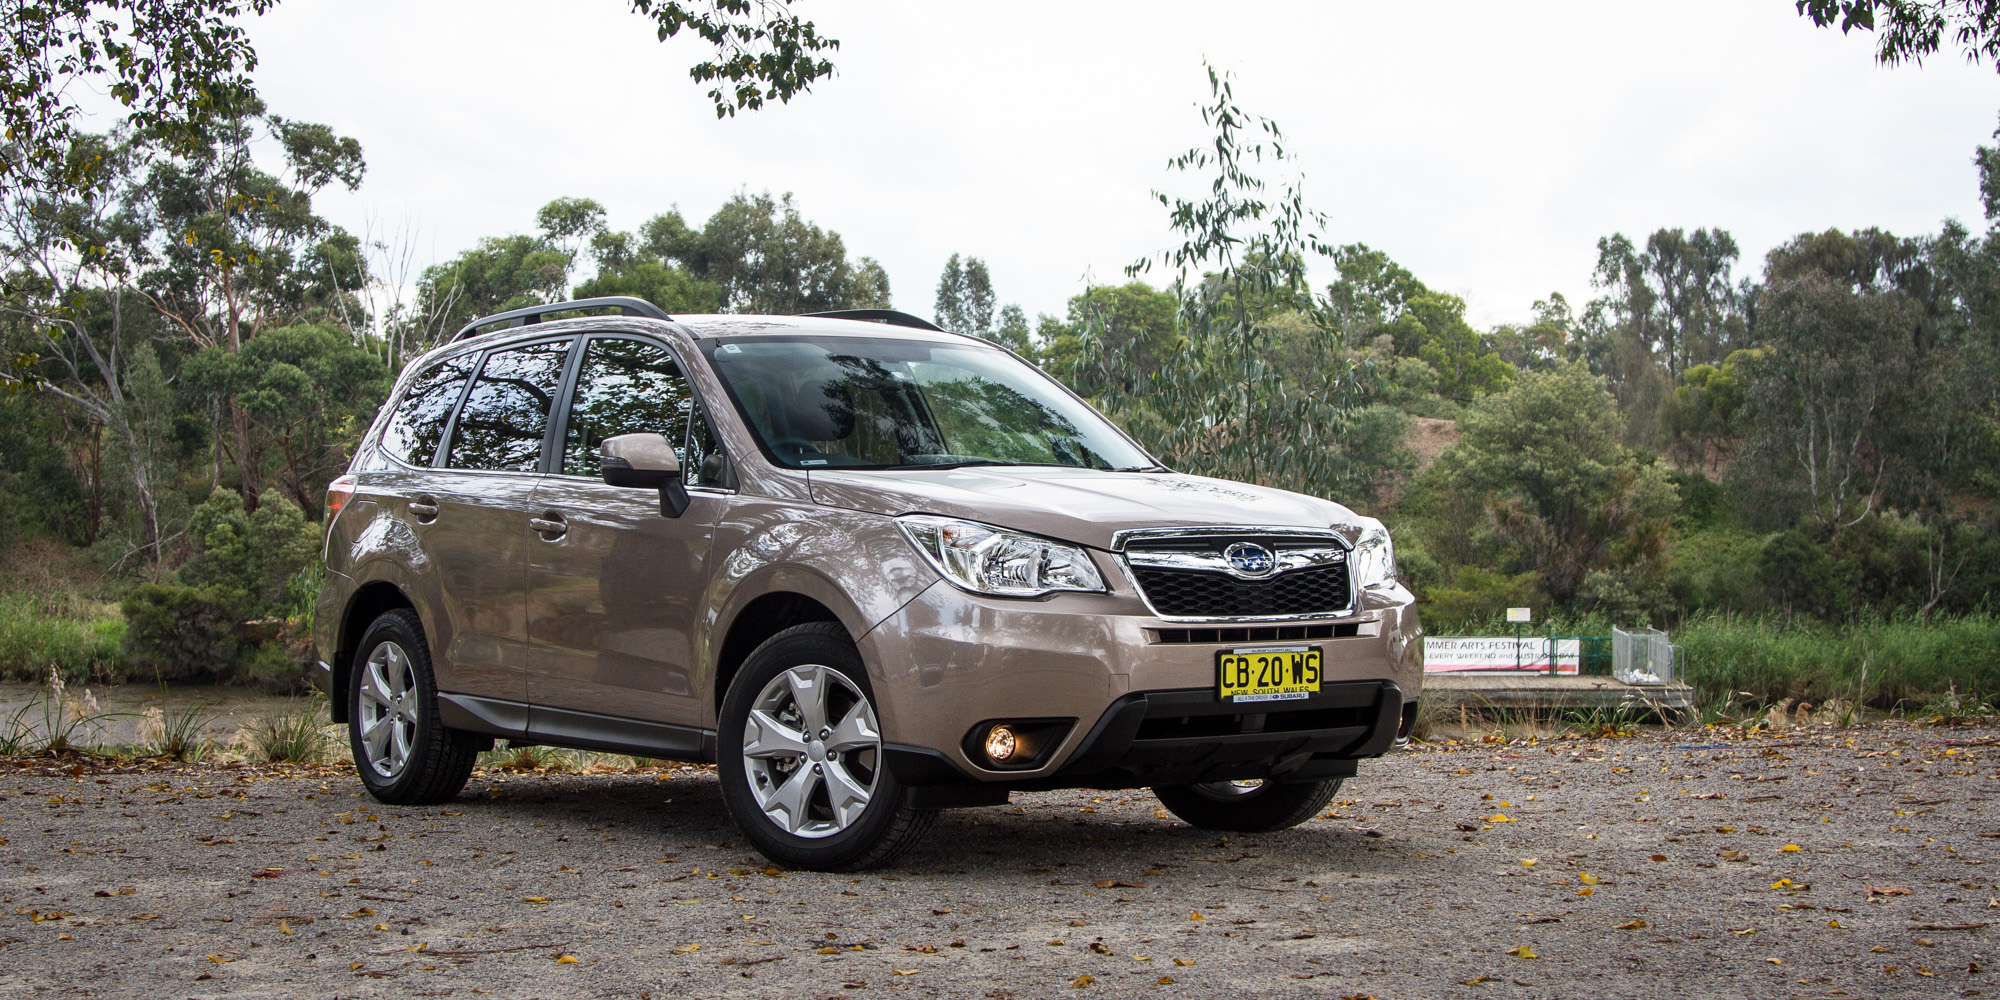 2015 subaru forester review 2 0d l diesel cvt photos caradvice. Black Bedroom Furniture Sets. Home Design Ideas